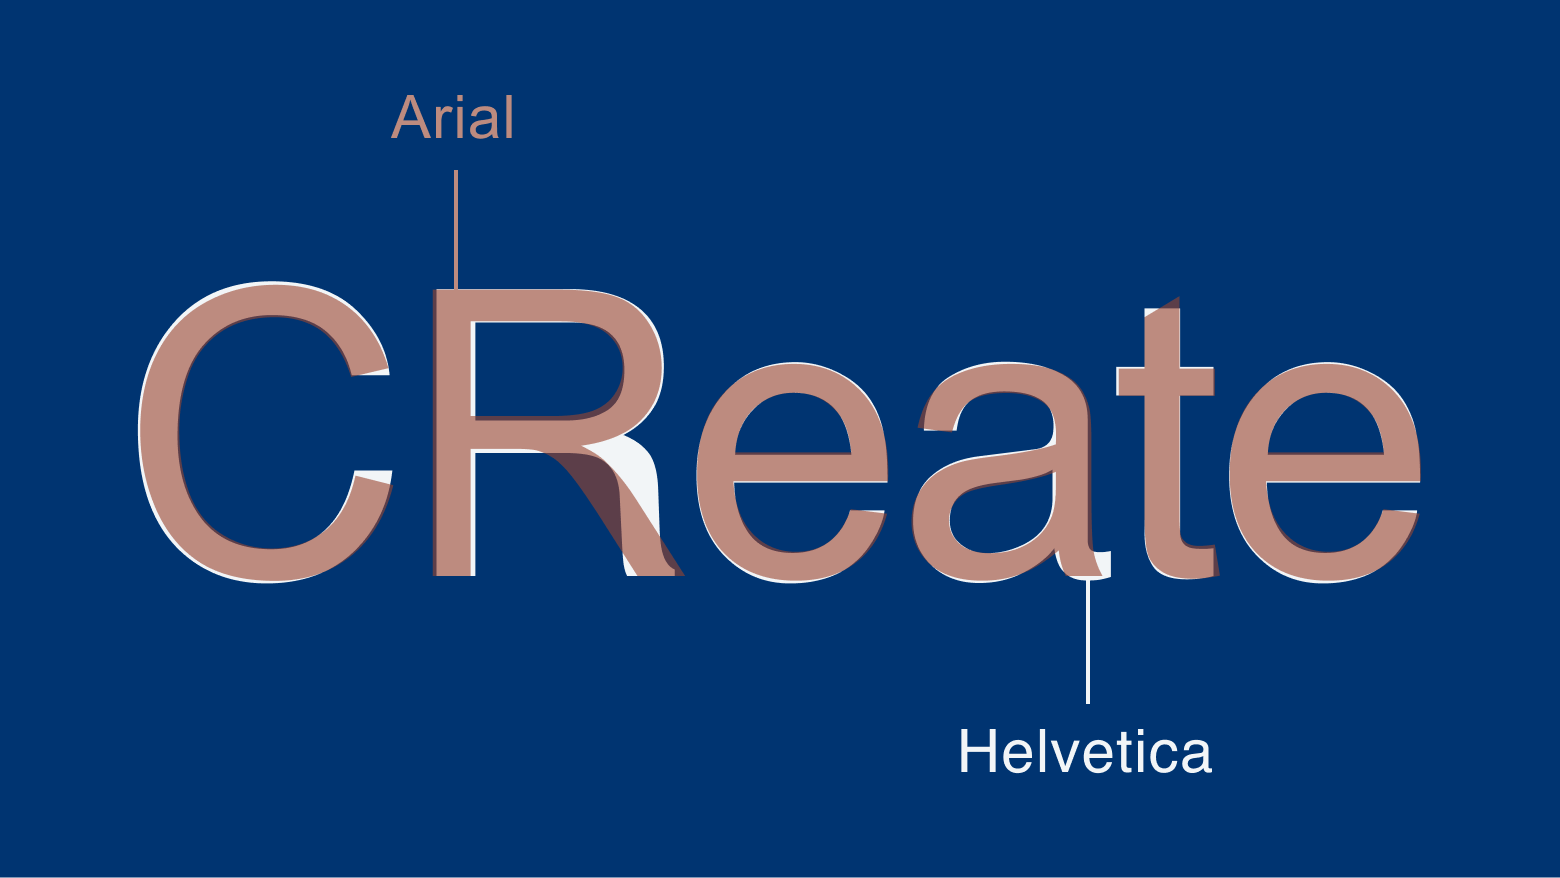 Create in Arial and Helvetica set, overlapping